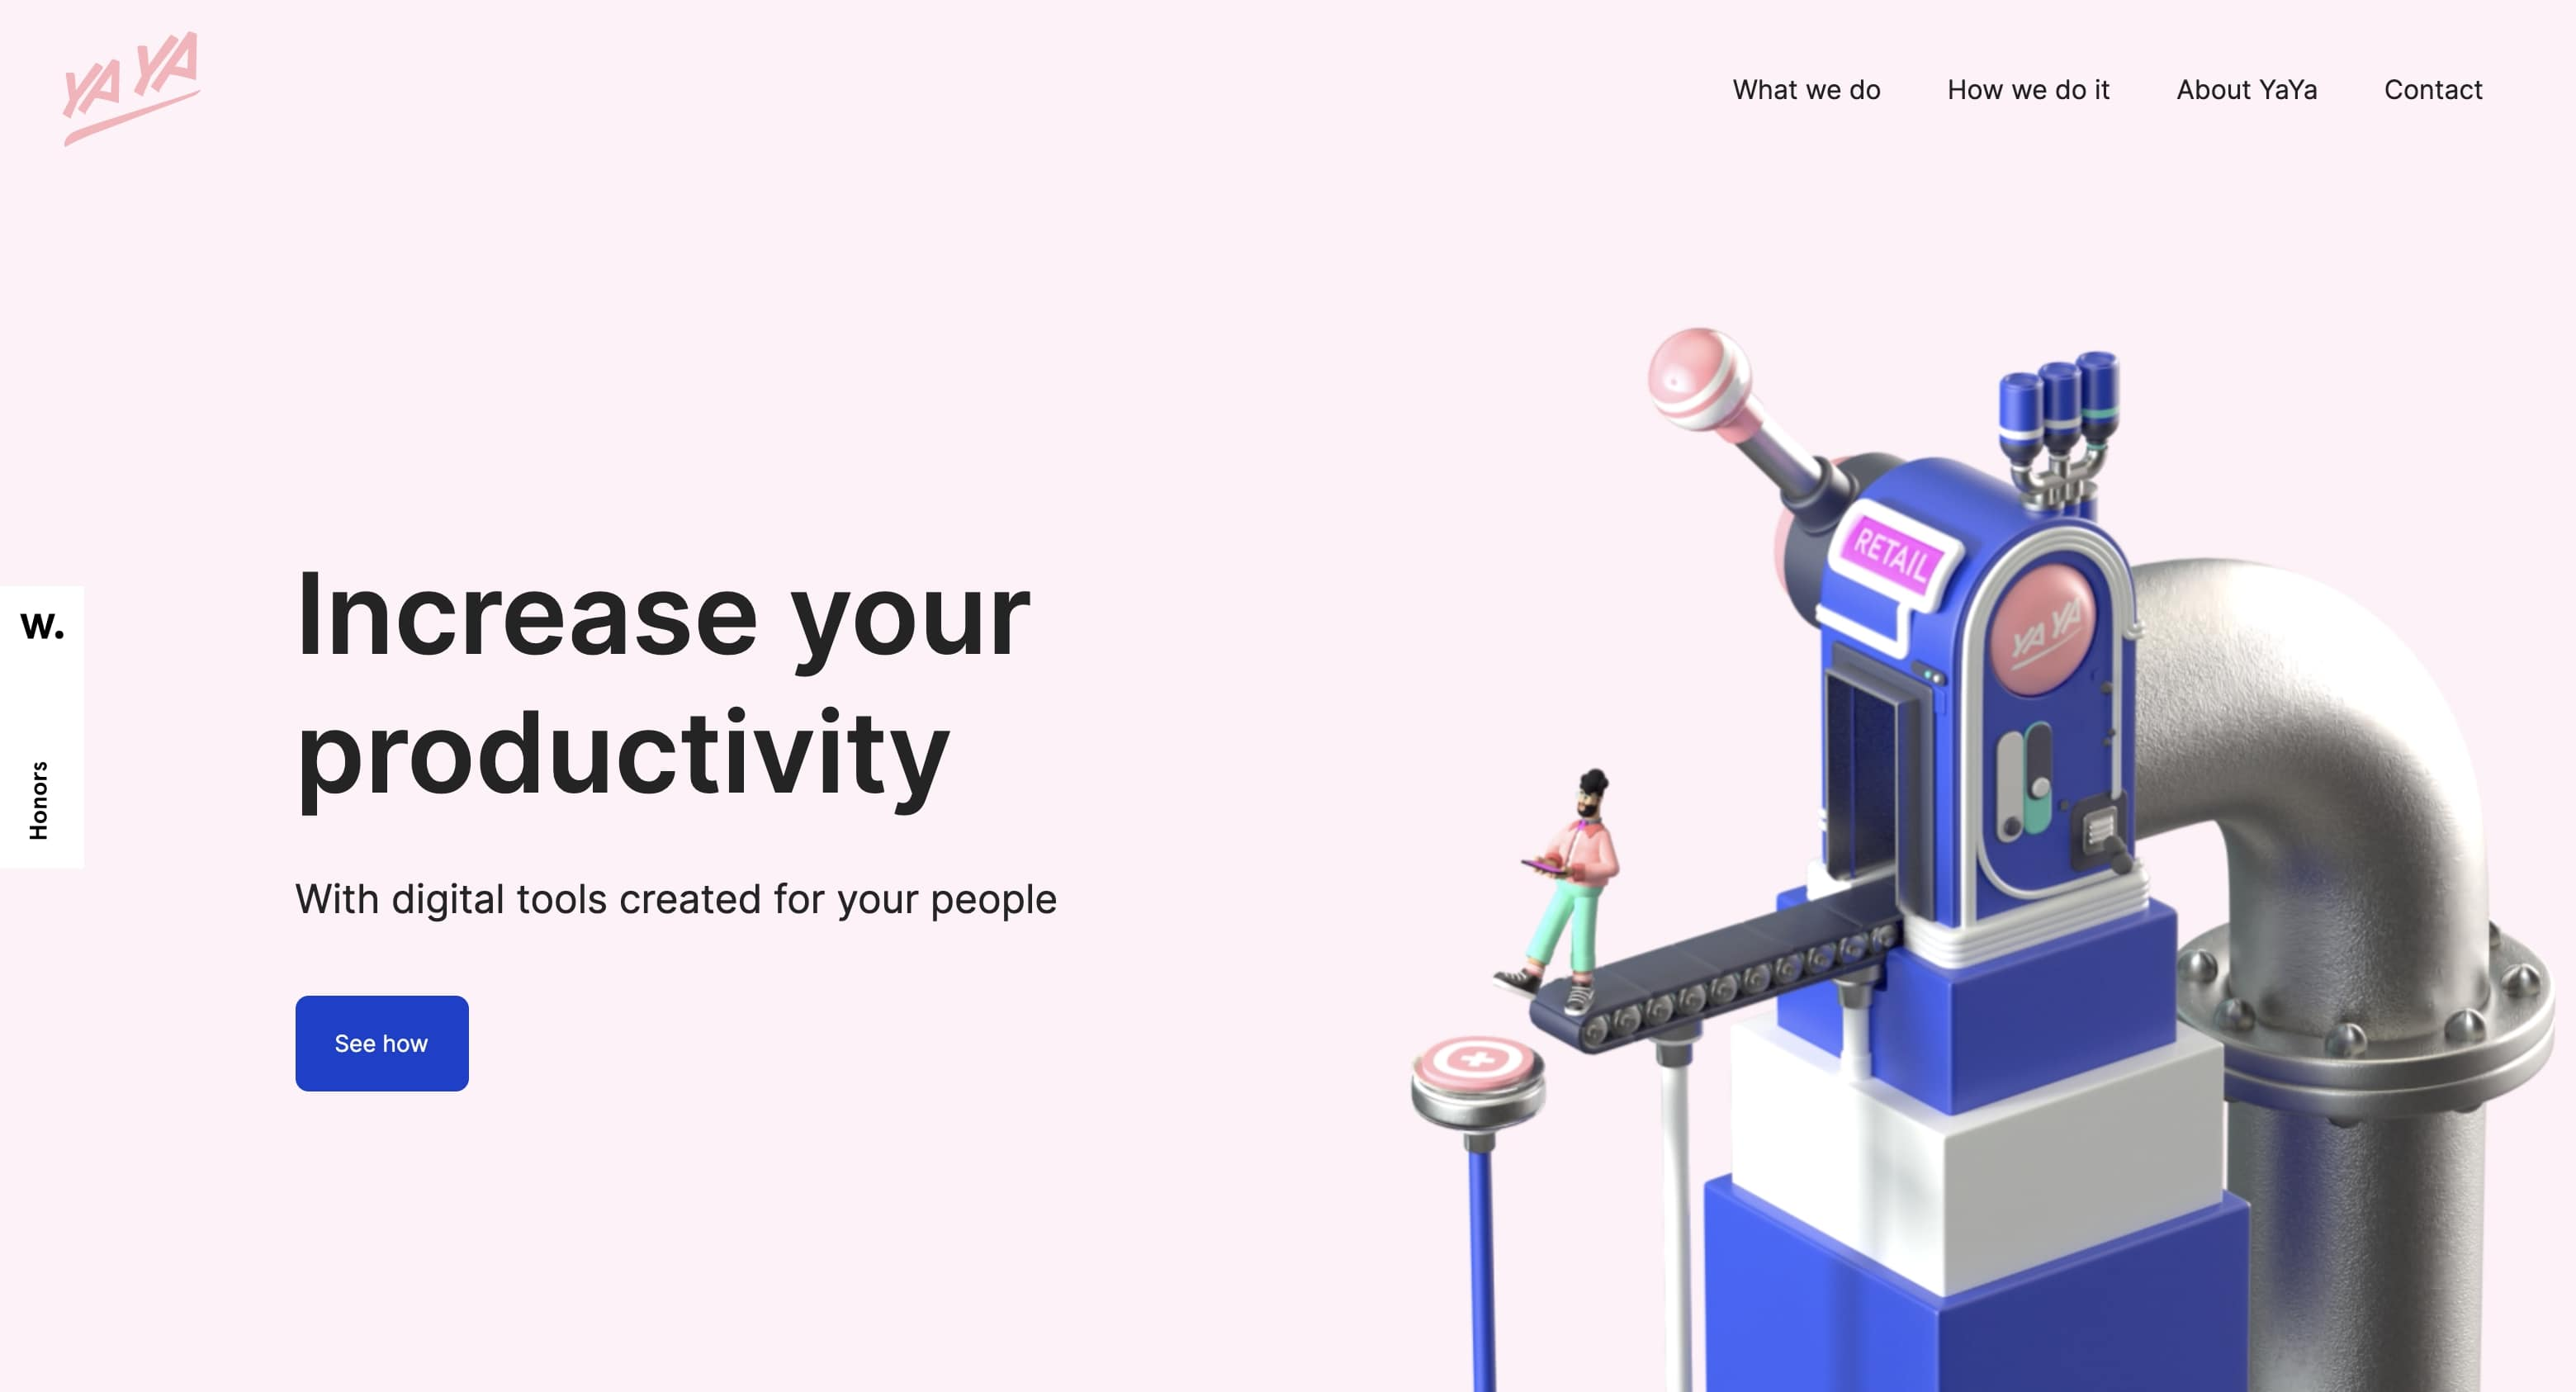 Yaya's home page hero highlights a detailed 3D illustration depicting a person interacting with a futuristic manufacturing machine.